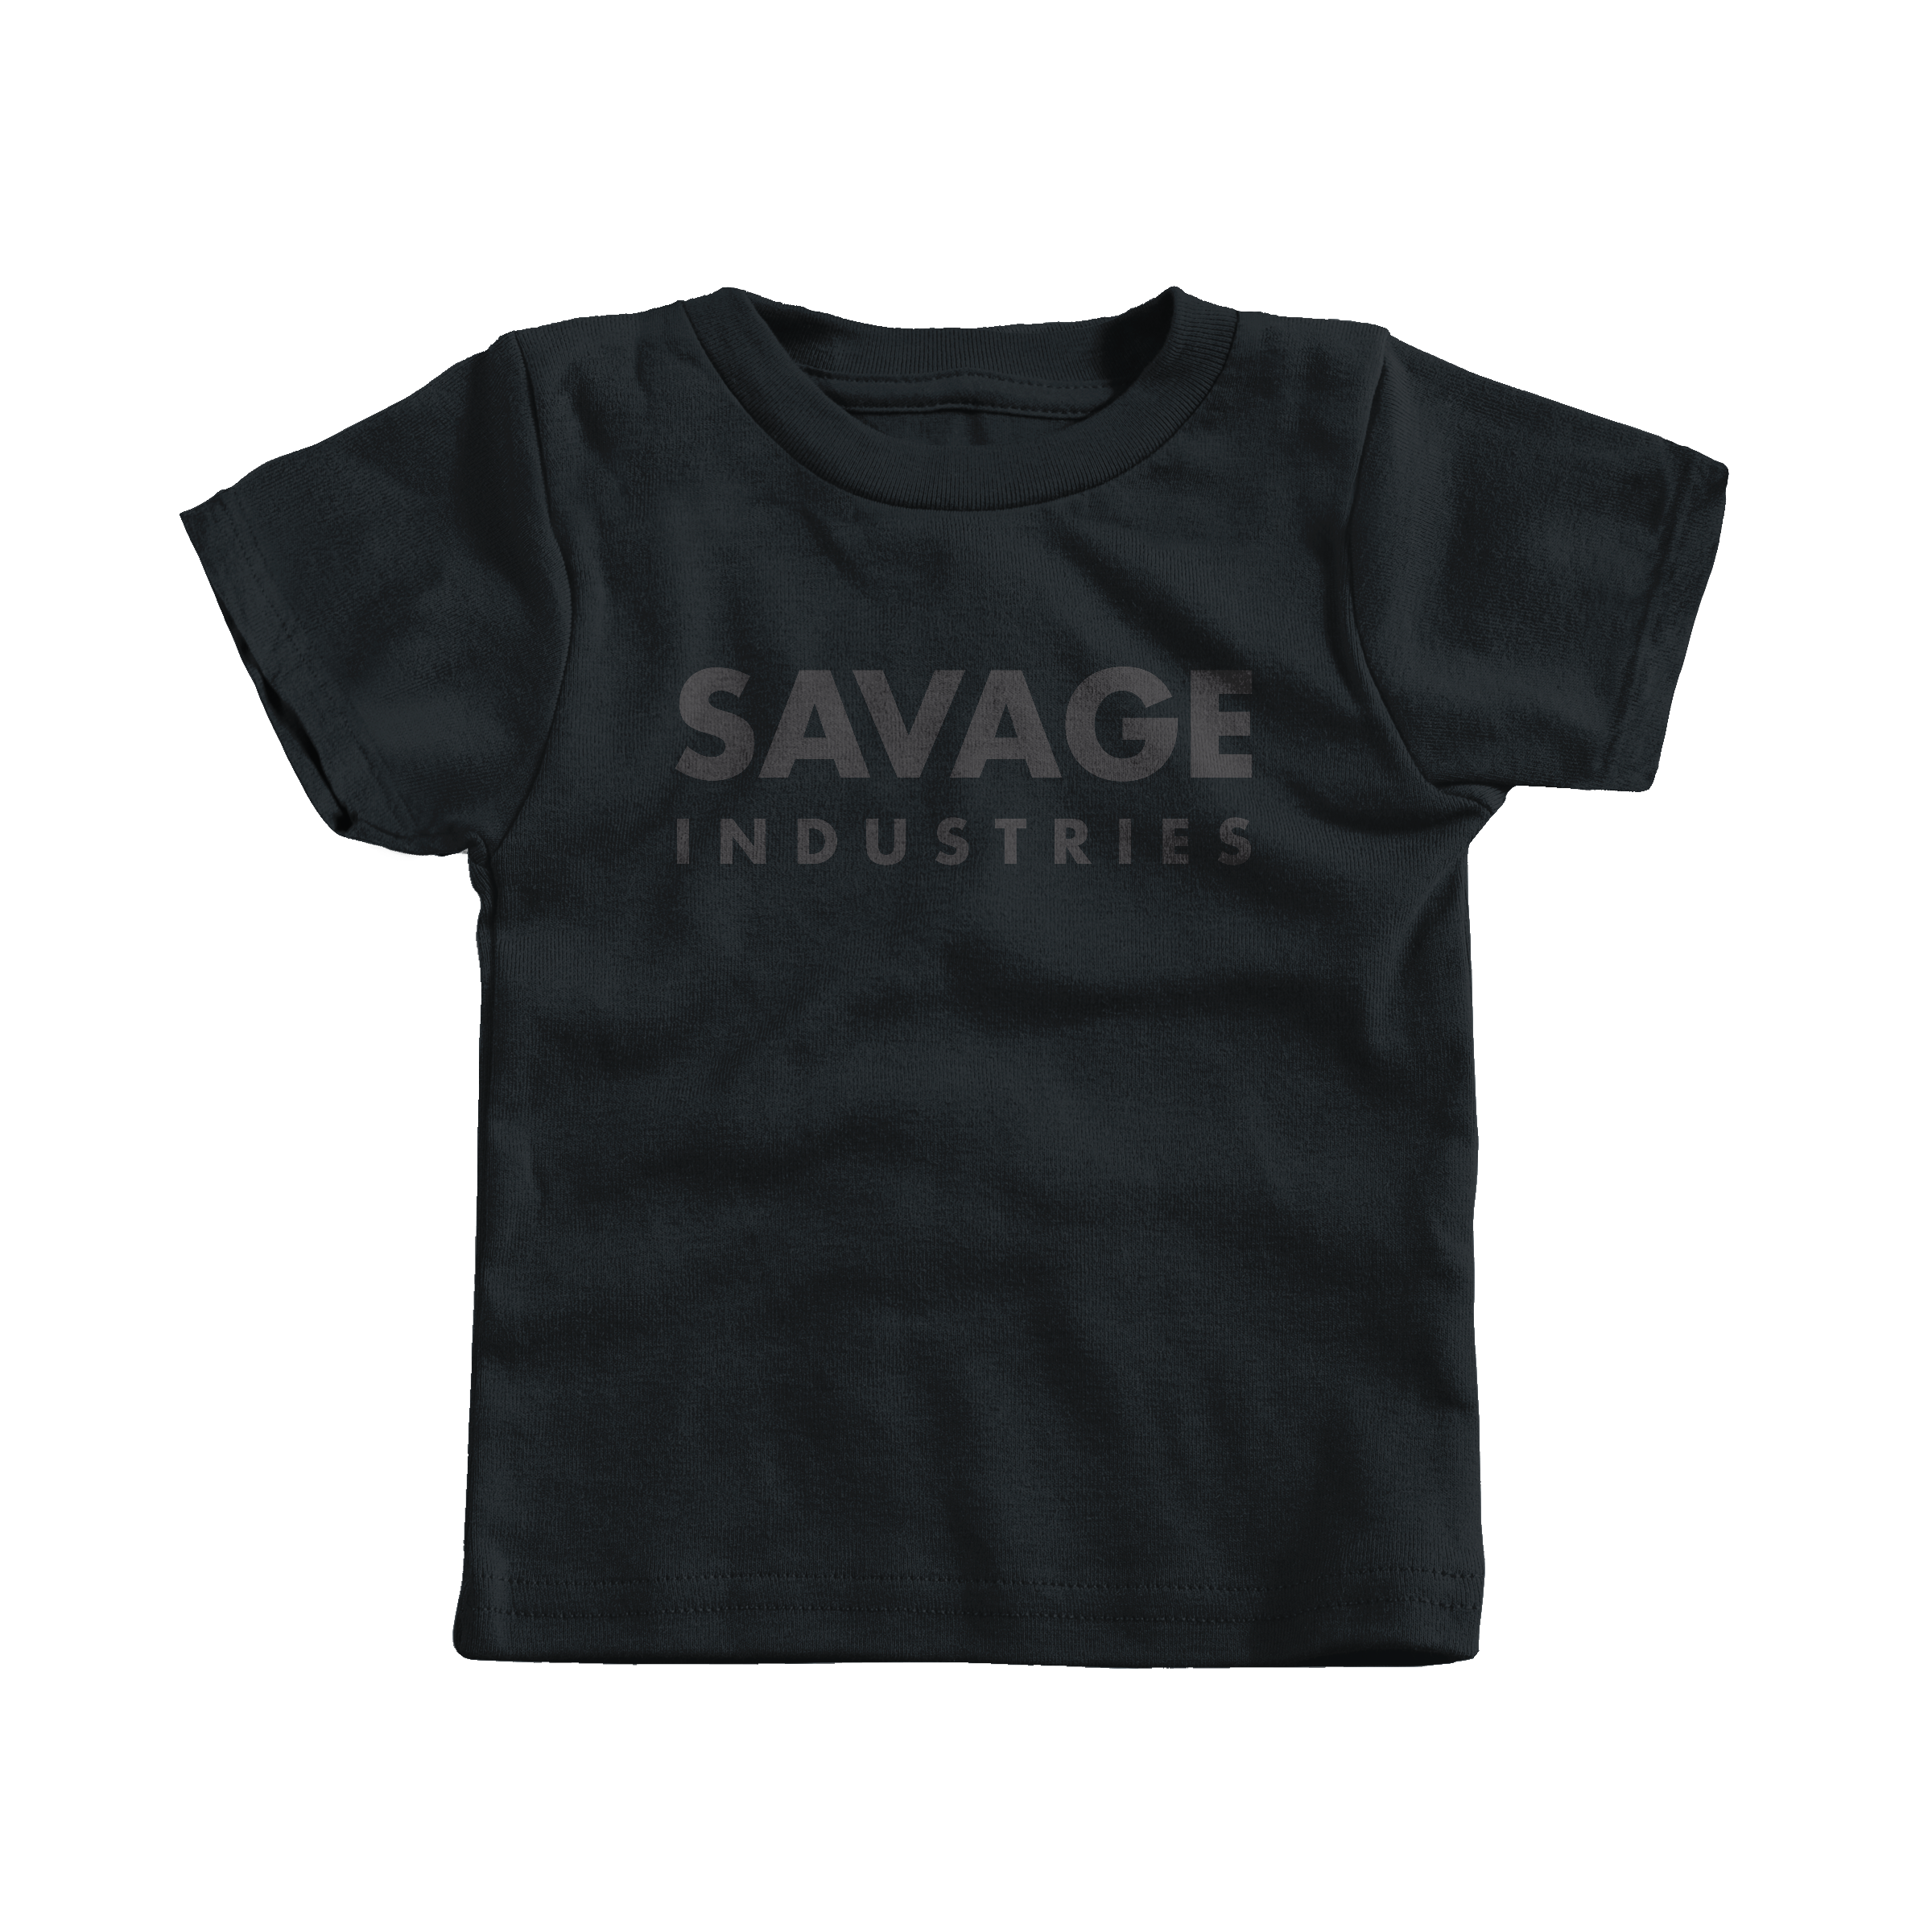 Savage Industries